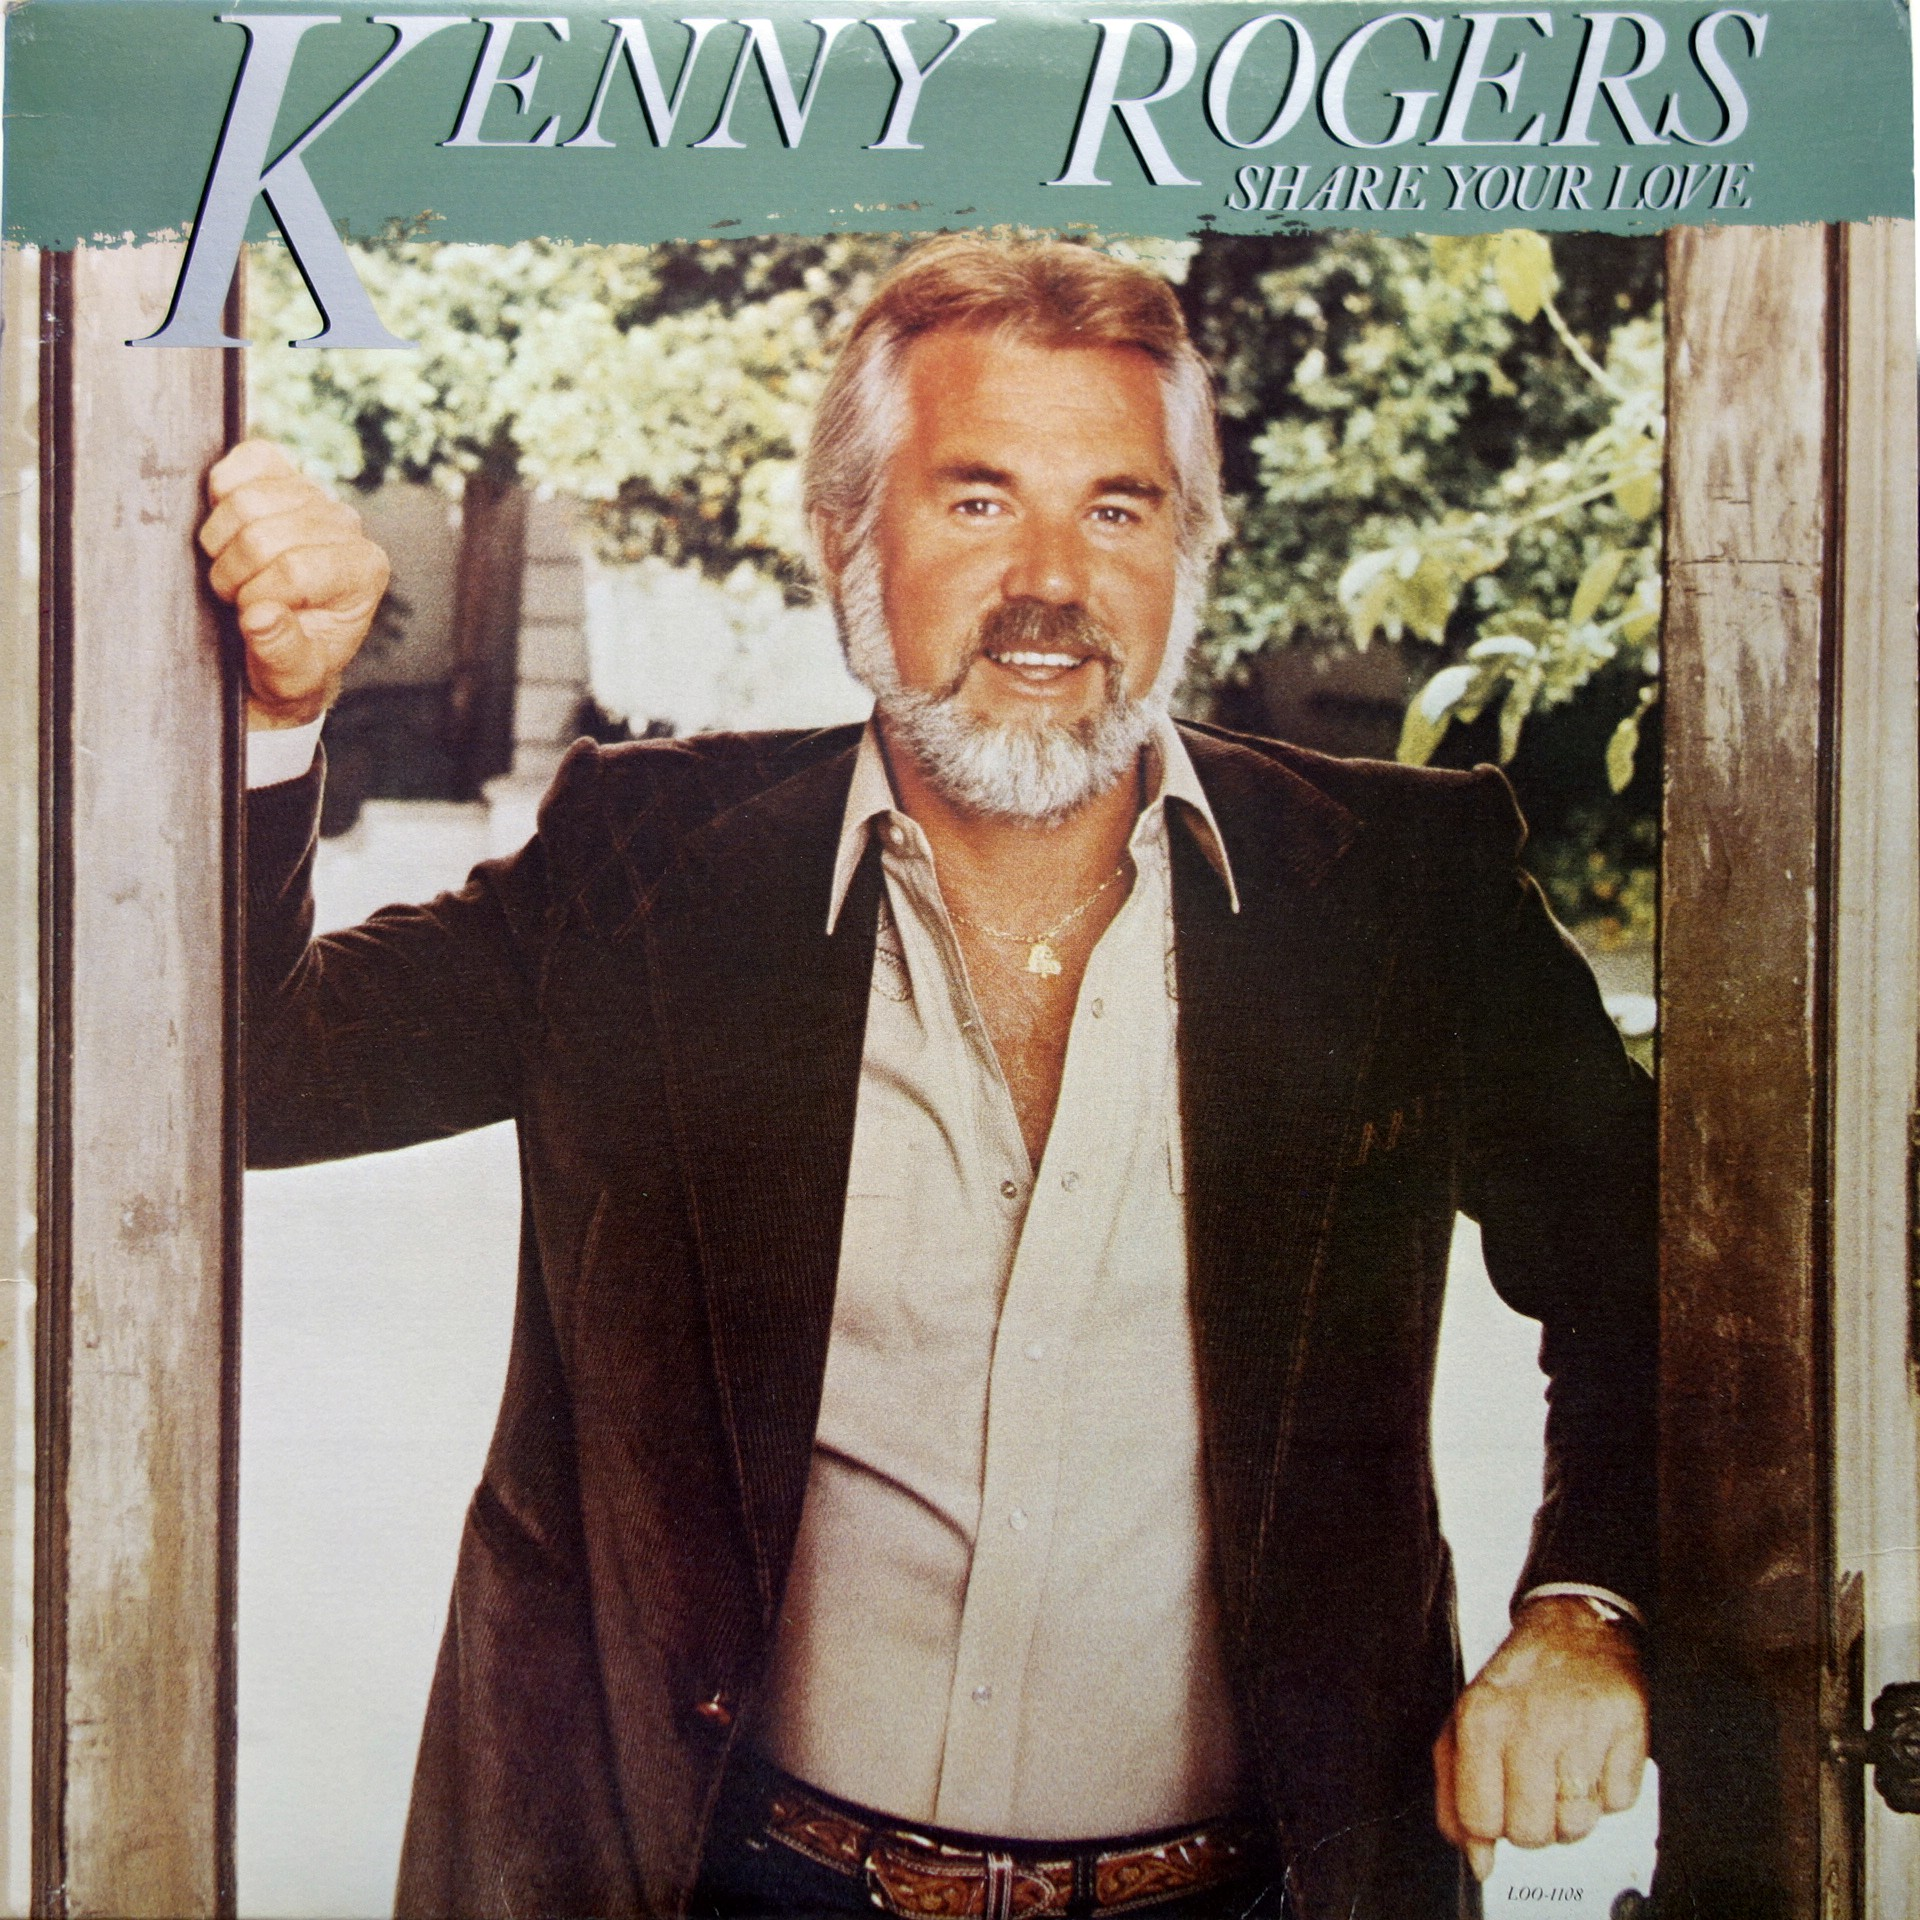 LP Kenny Rogers ‎– Share Your Love